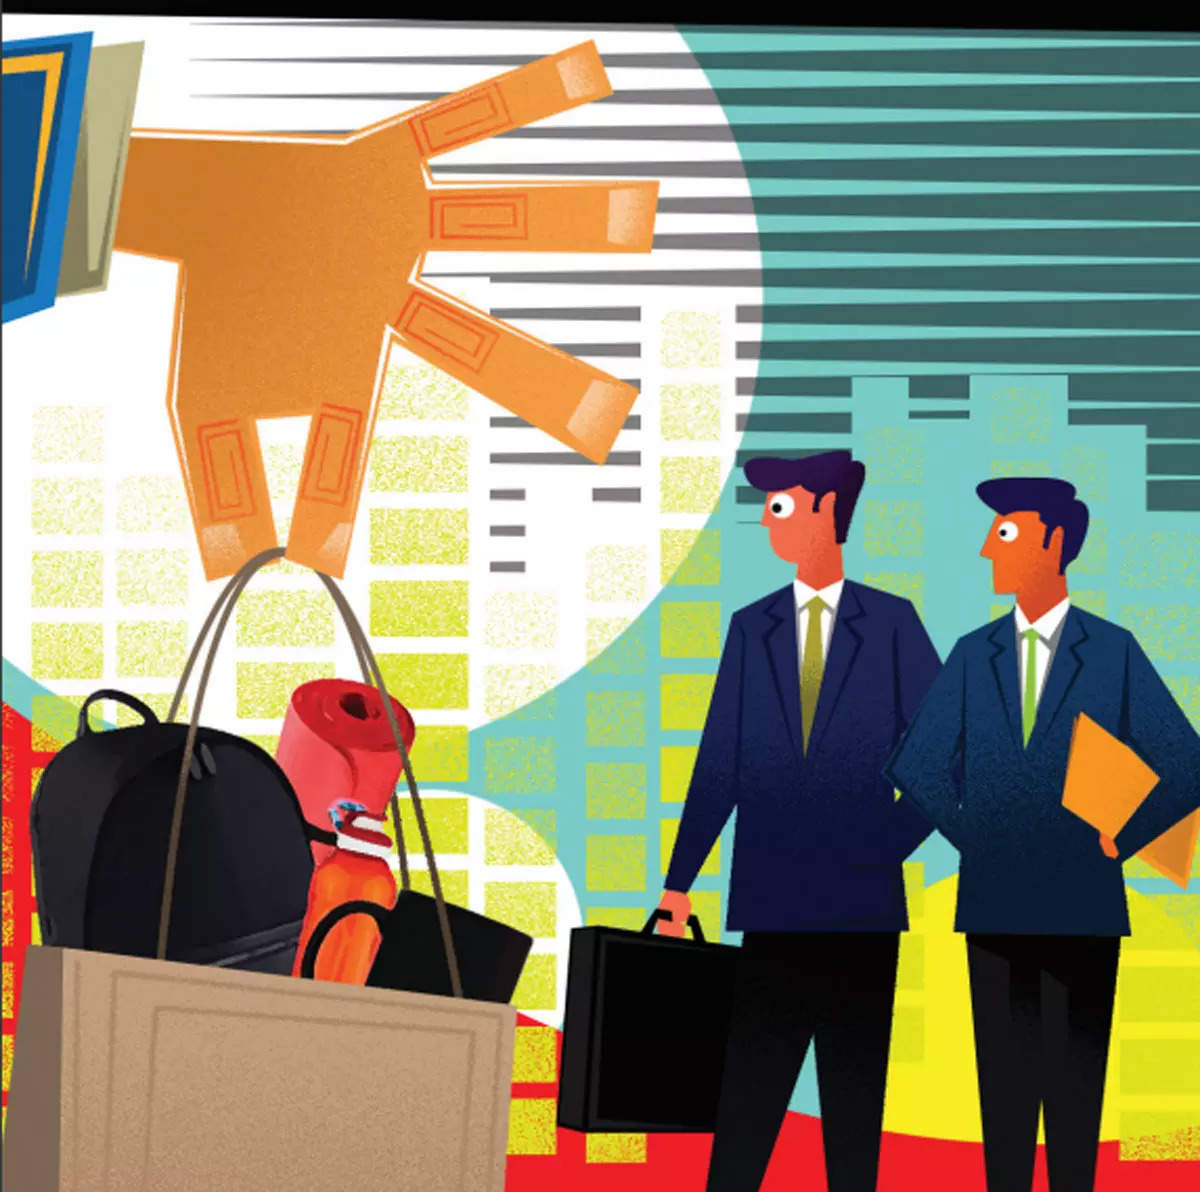 Home is where HR is: How companies are coming up with new onboarding processes in Covid times